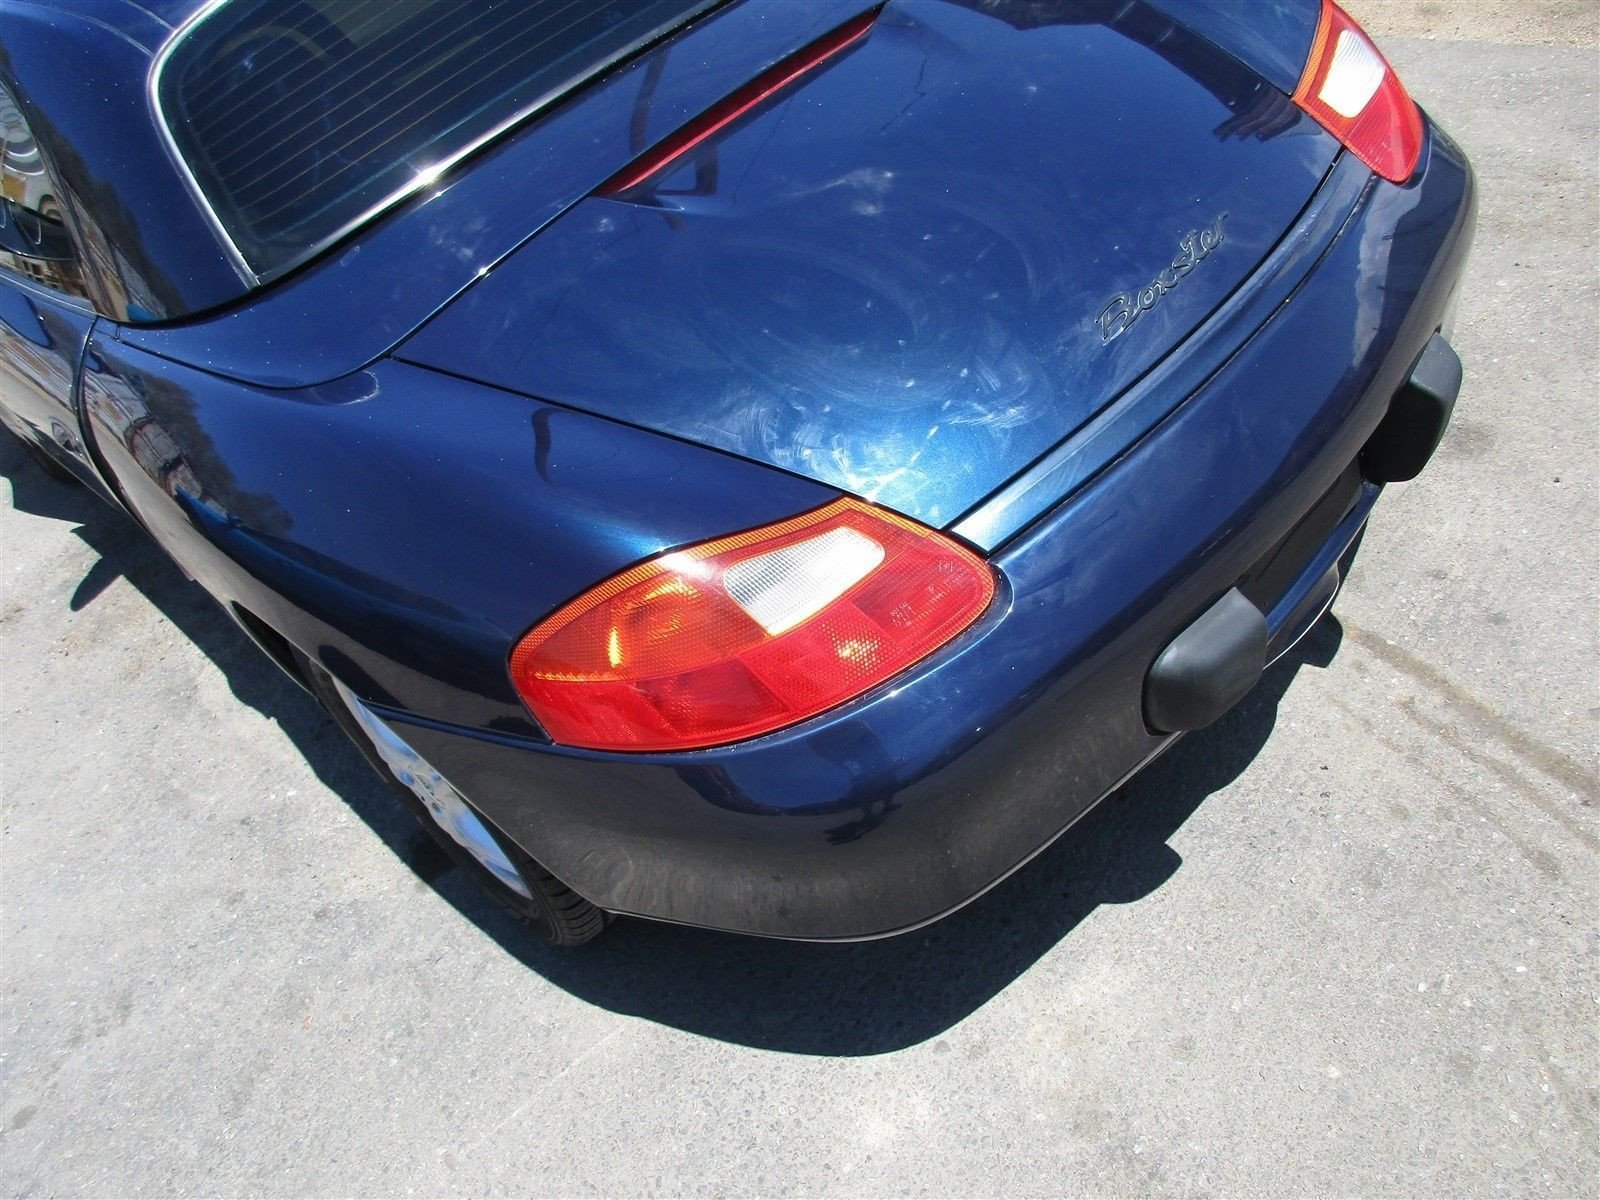 00 Boxster RWD Porsche 986 Parting Out car parts 120,525